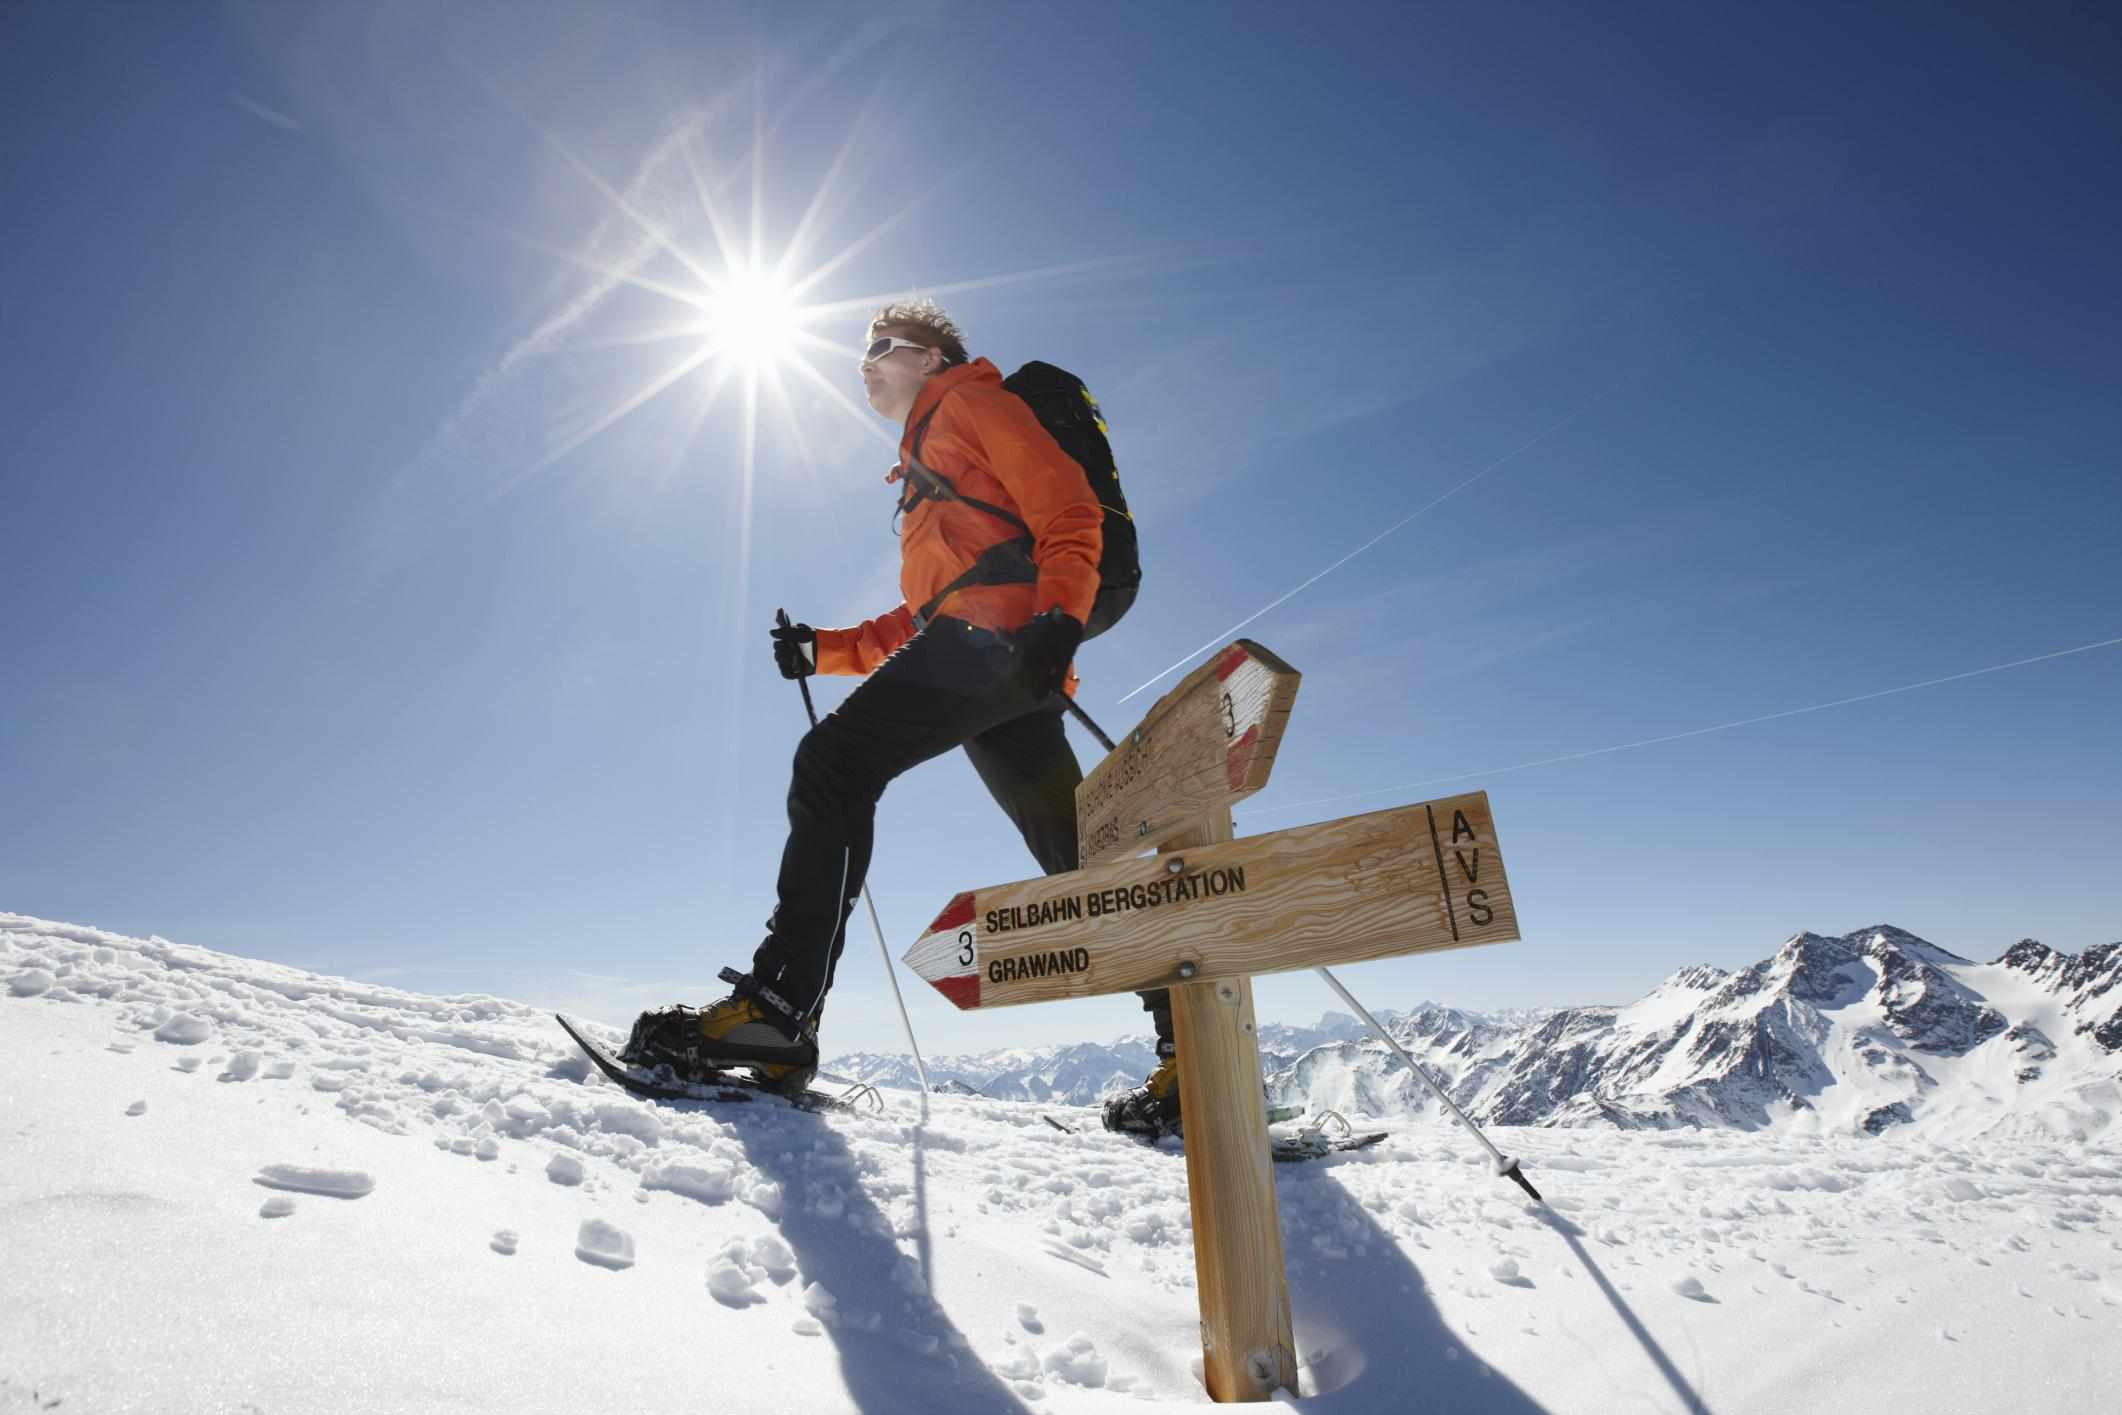 Man with snowshoes walking on a snowy mountain